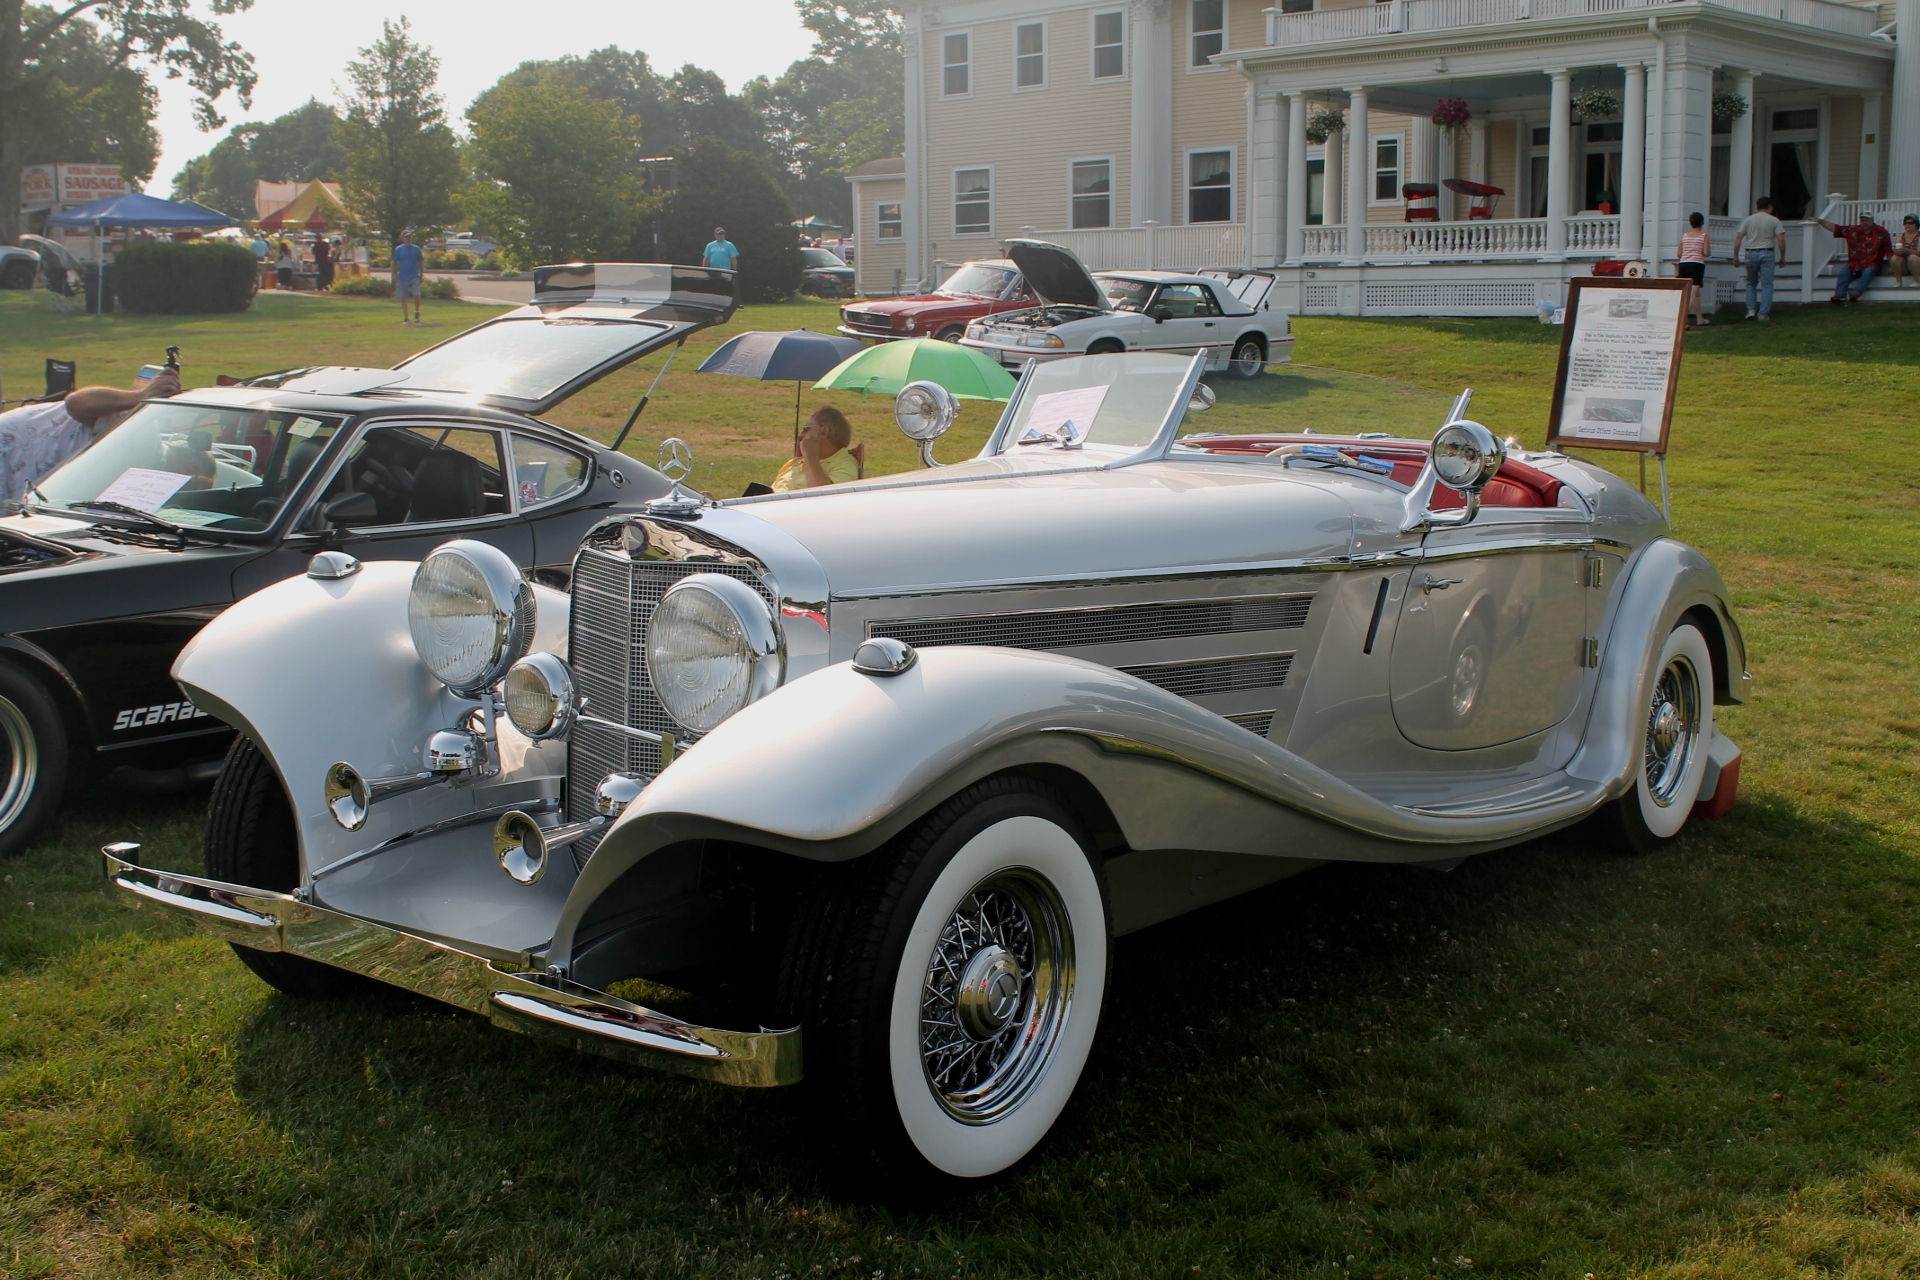 2015 Bay State Antique Auto Club Show In Dedham, Massachusetts |